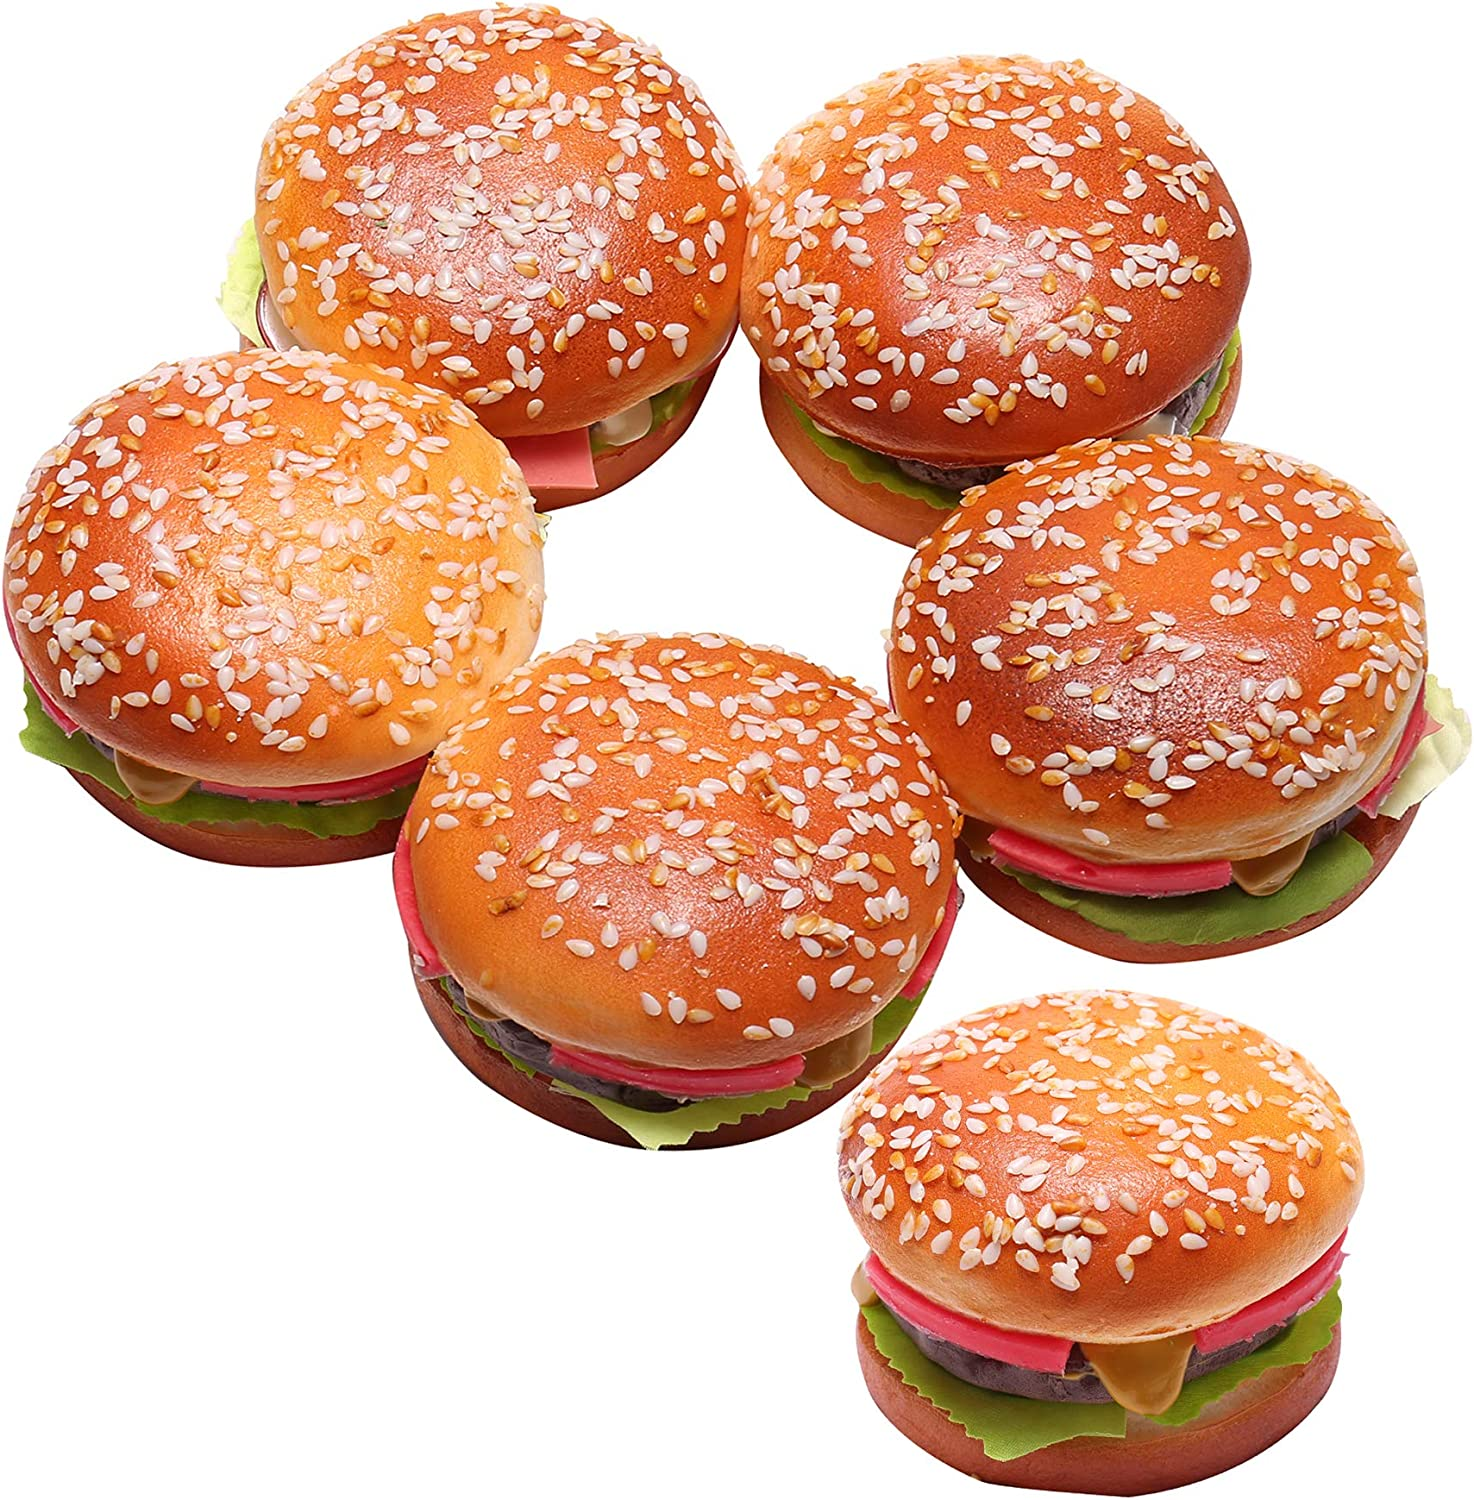 6 Pieces Fake Hamburger for Display with a Magnet, Artificial Beef Bread Play Food, Perfect for Kids Pretend Bakery Party, Birthday Realistic Foods Decorations (Big Sesame Beef Burger)